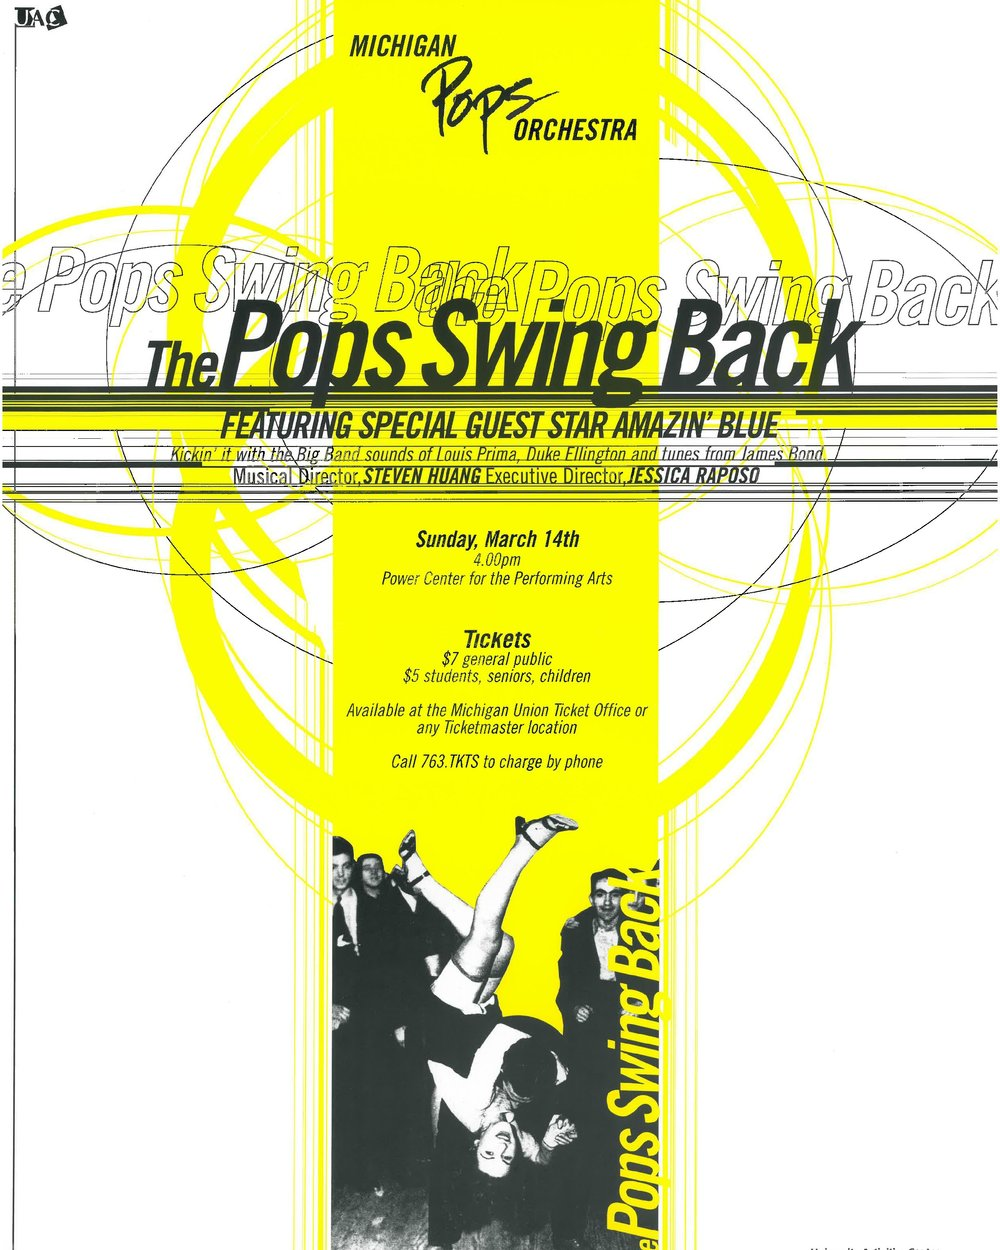 THE POPS SWING BACK  March 14, 1999*